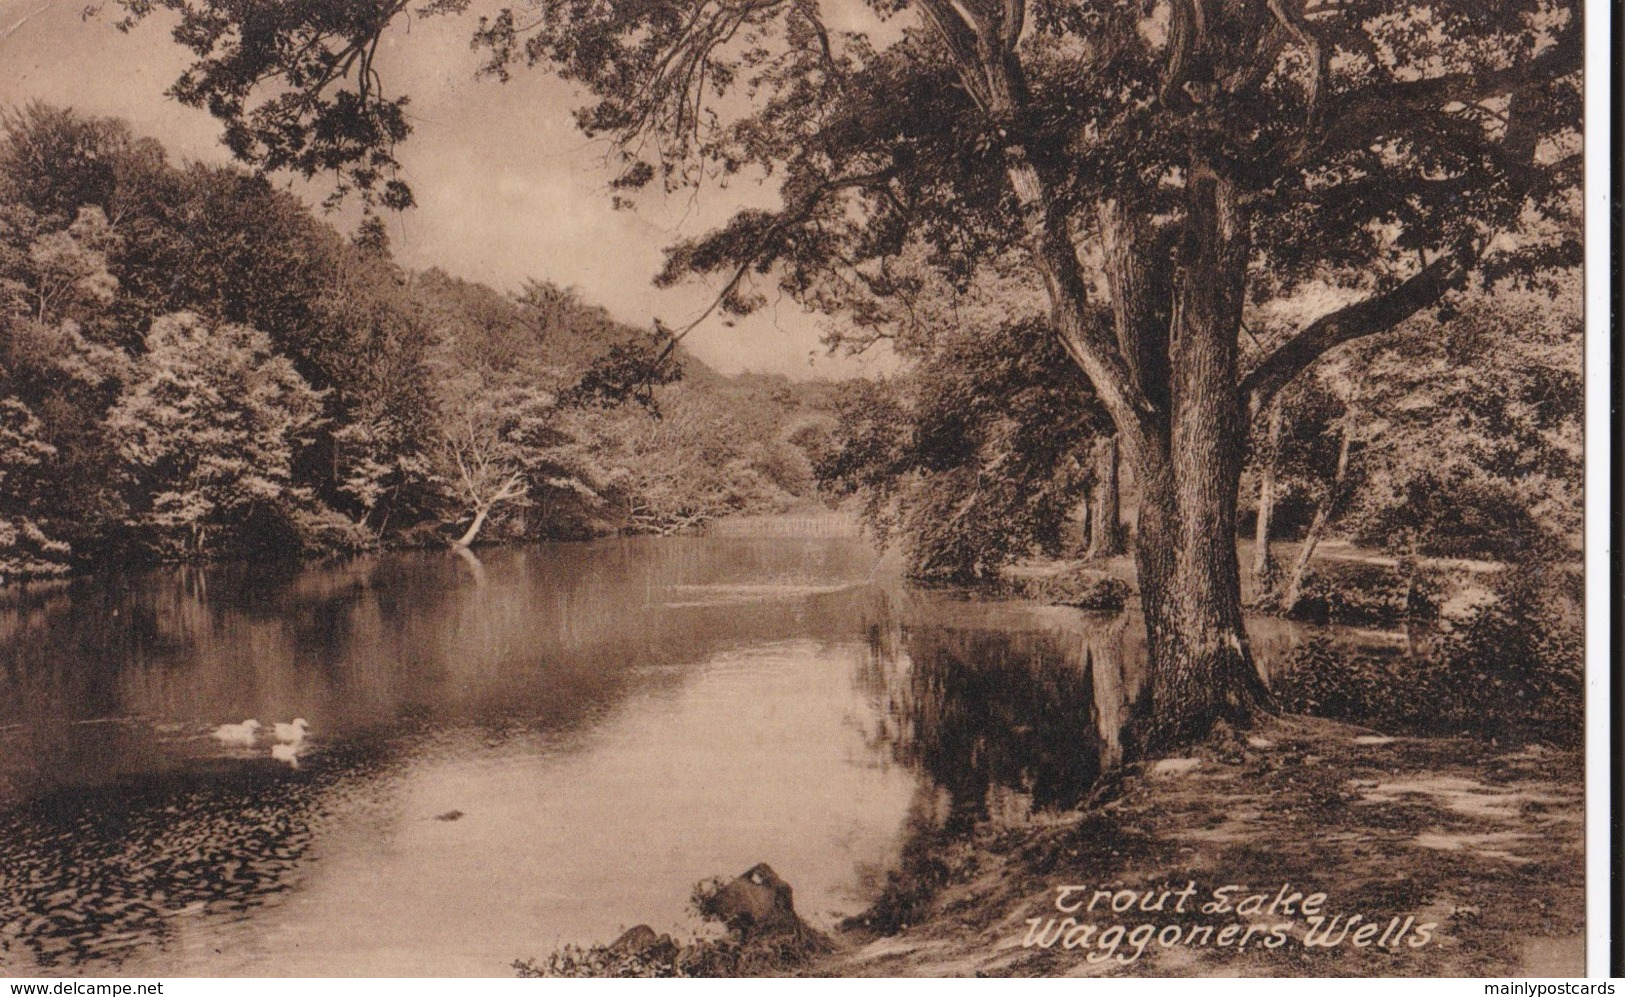 AQ95 Trout Lake, Waggoners Wells - Local Publisher - Surrey